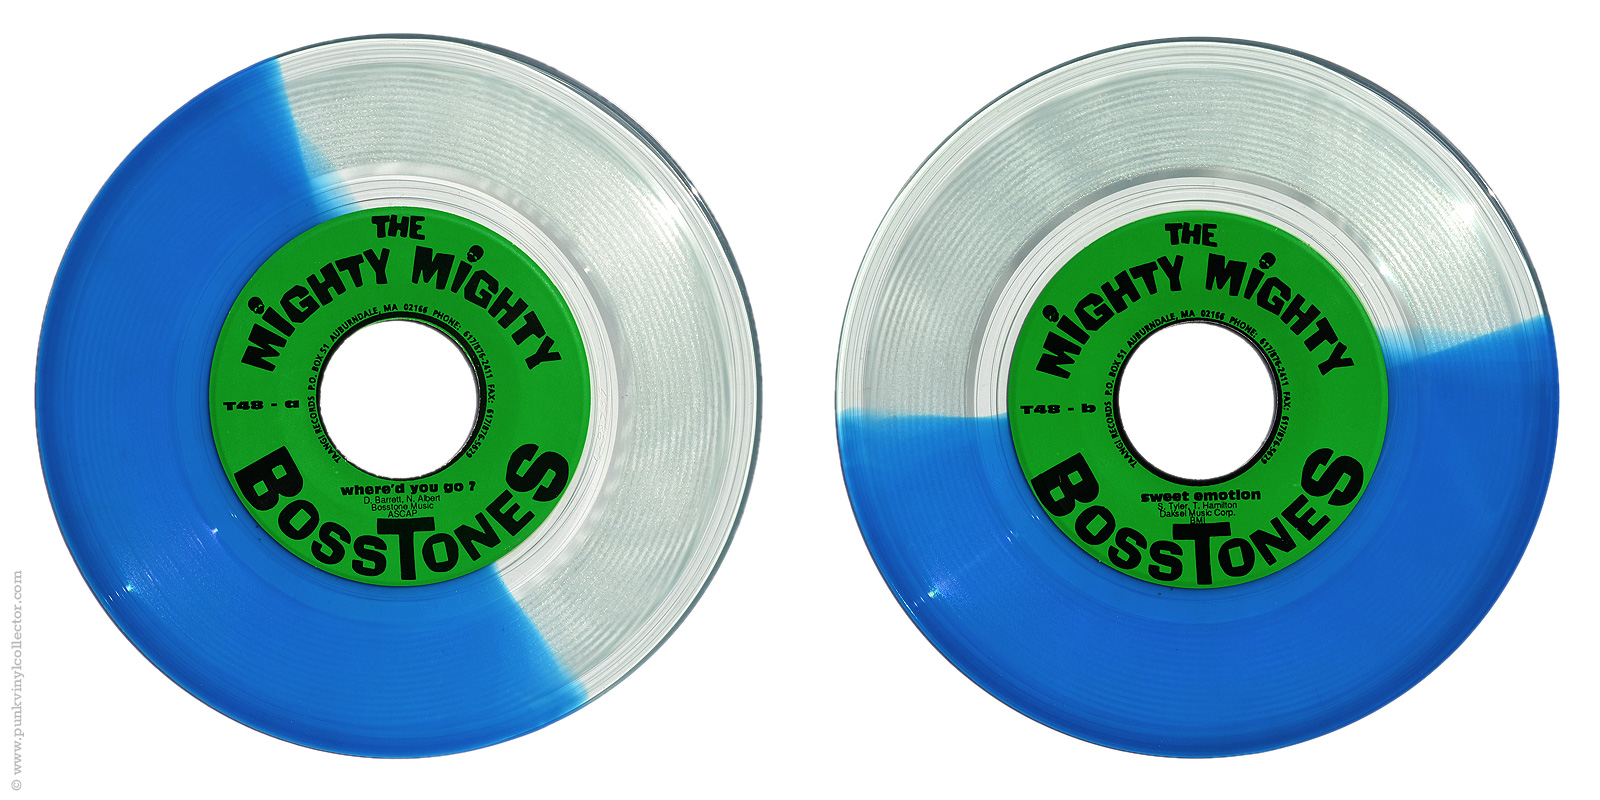 The Mighty Mighty Bosstones Punk Vinyl Collector